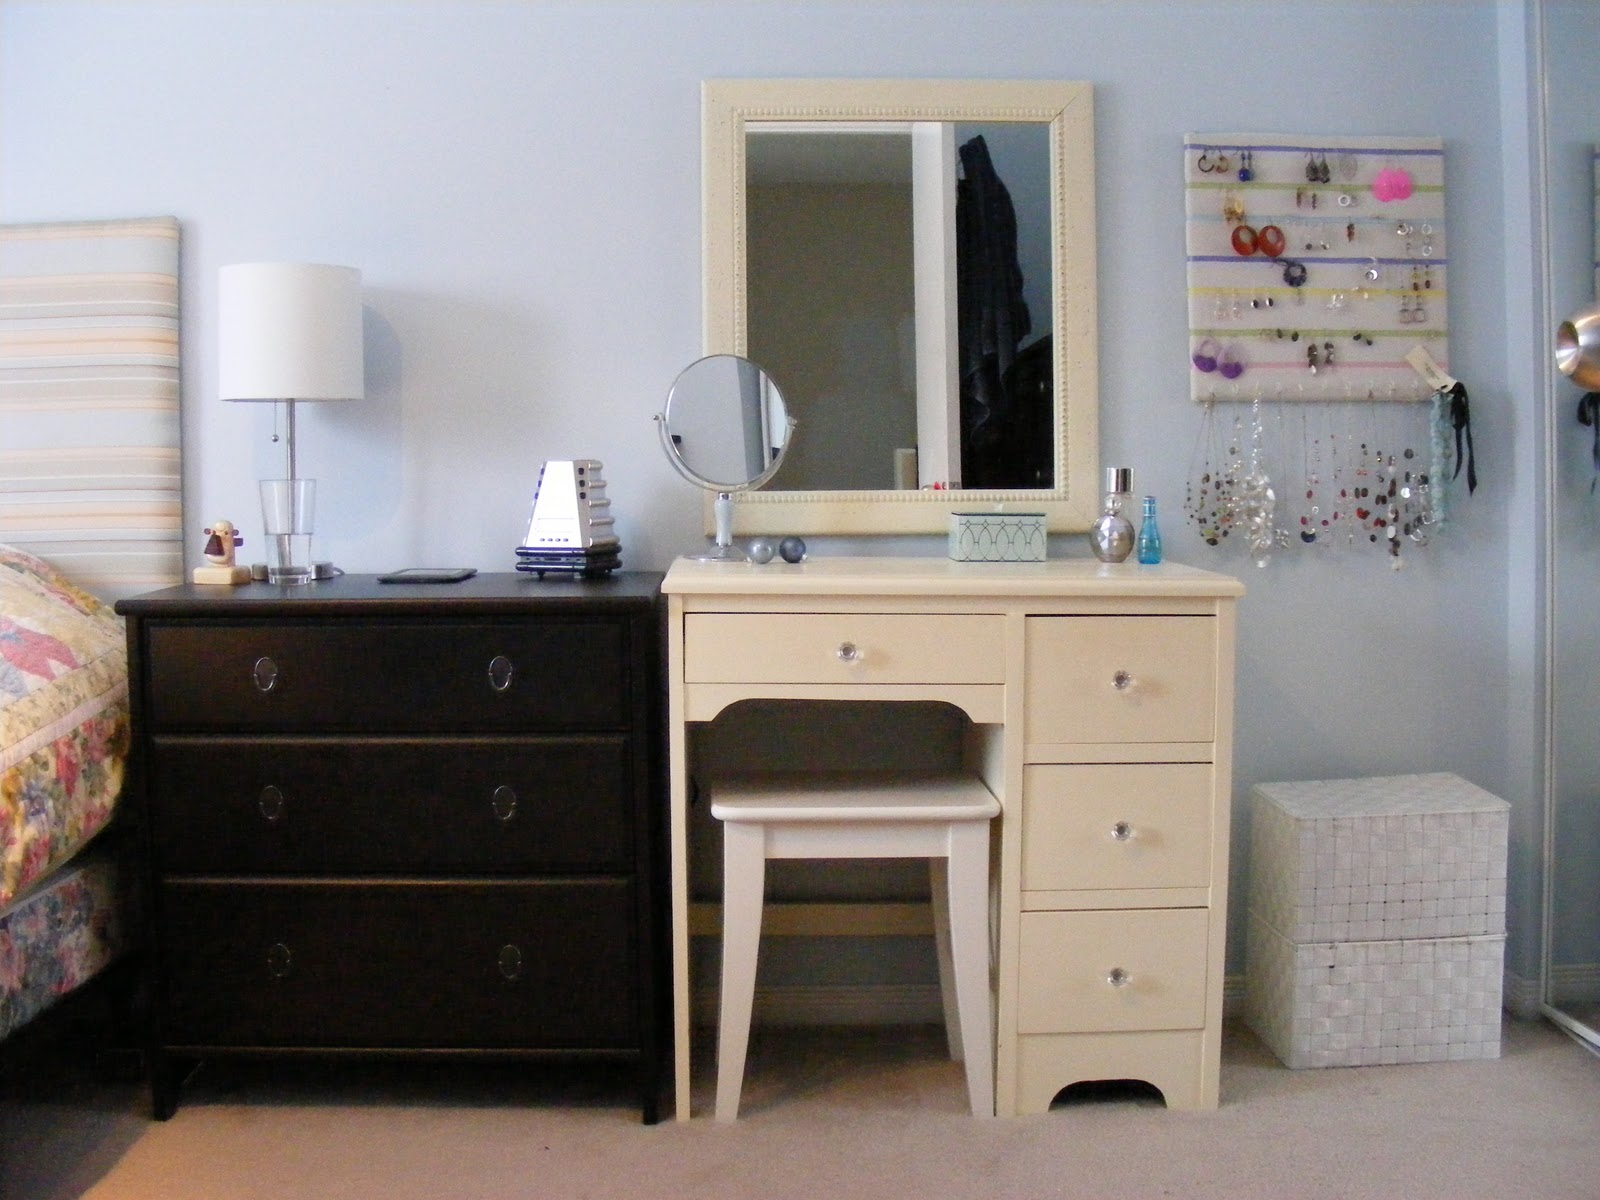 Get Privacy With The Bedroom Vanity — Jackiehouchin Home Ideas